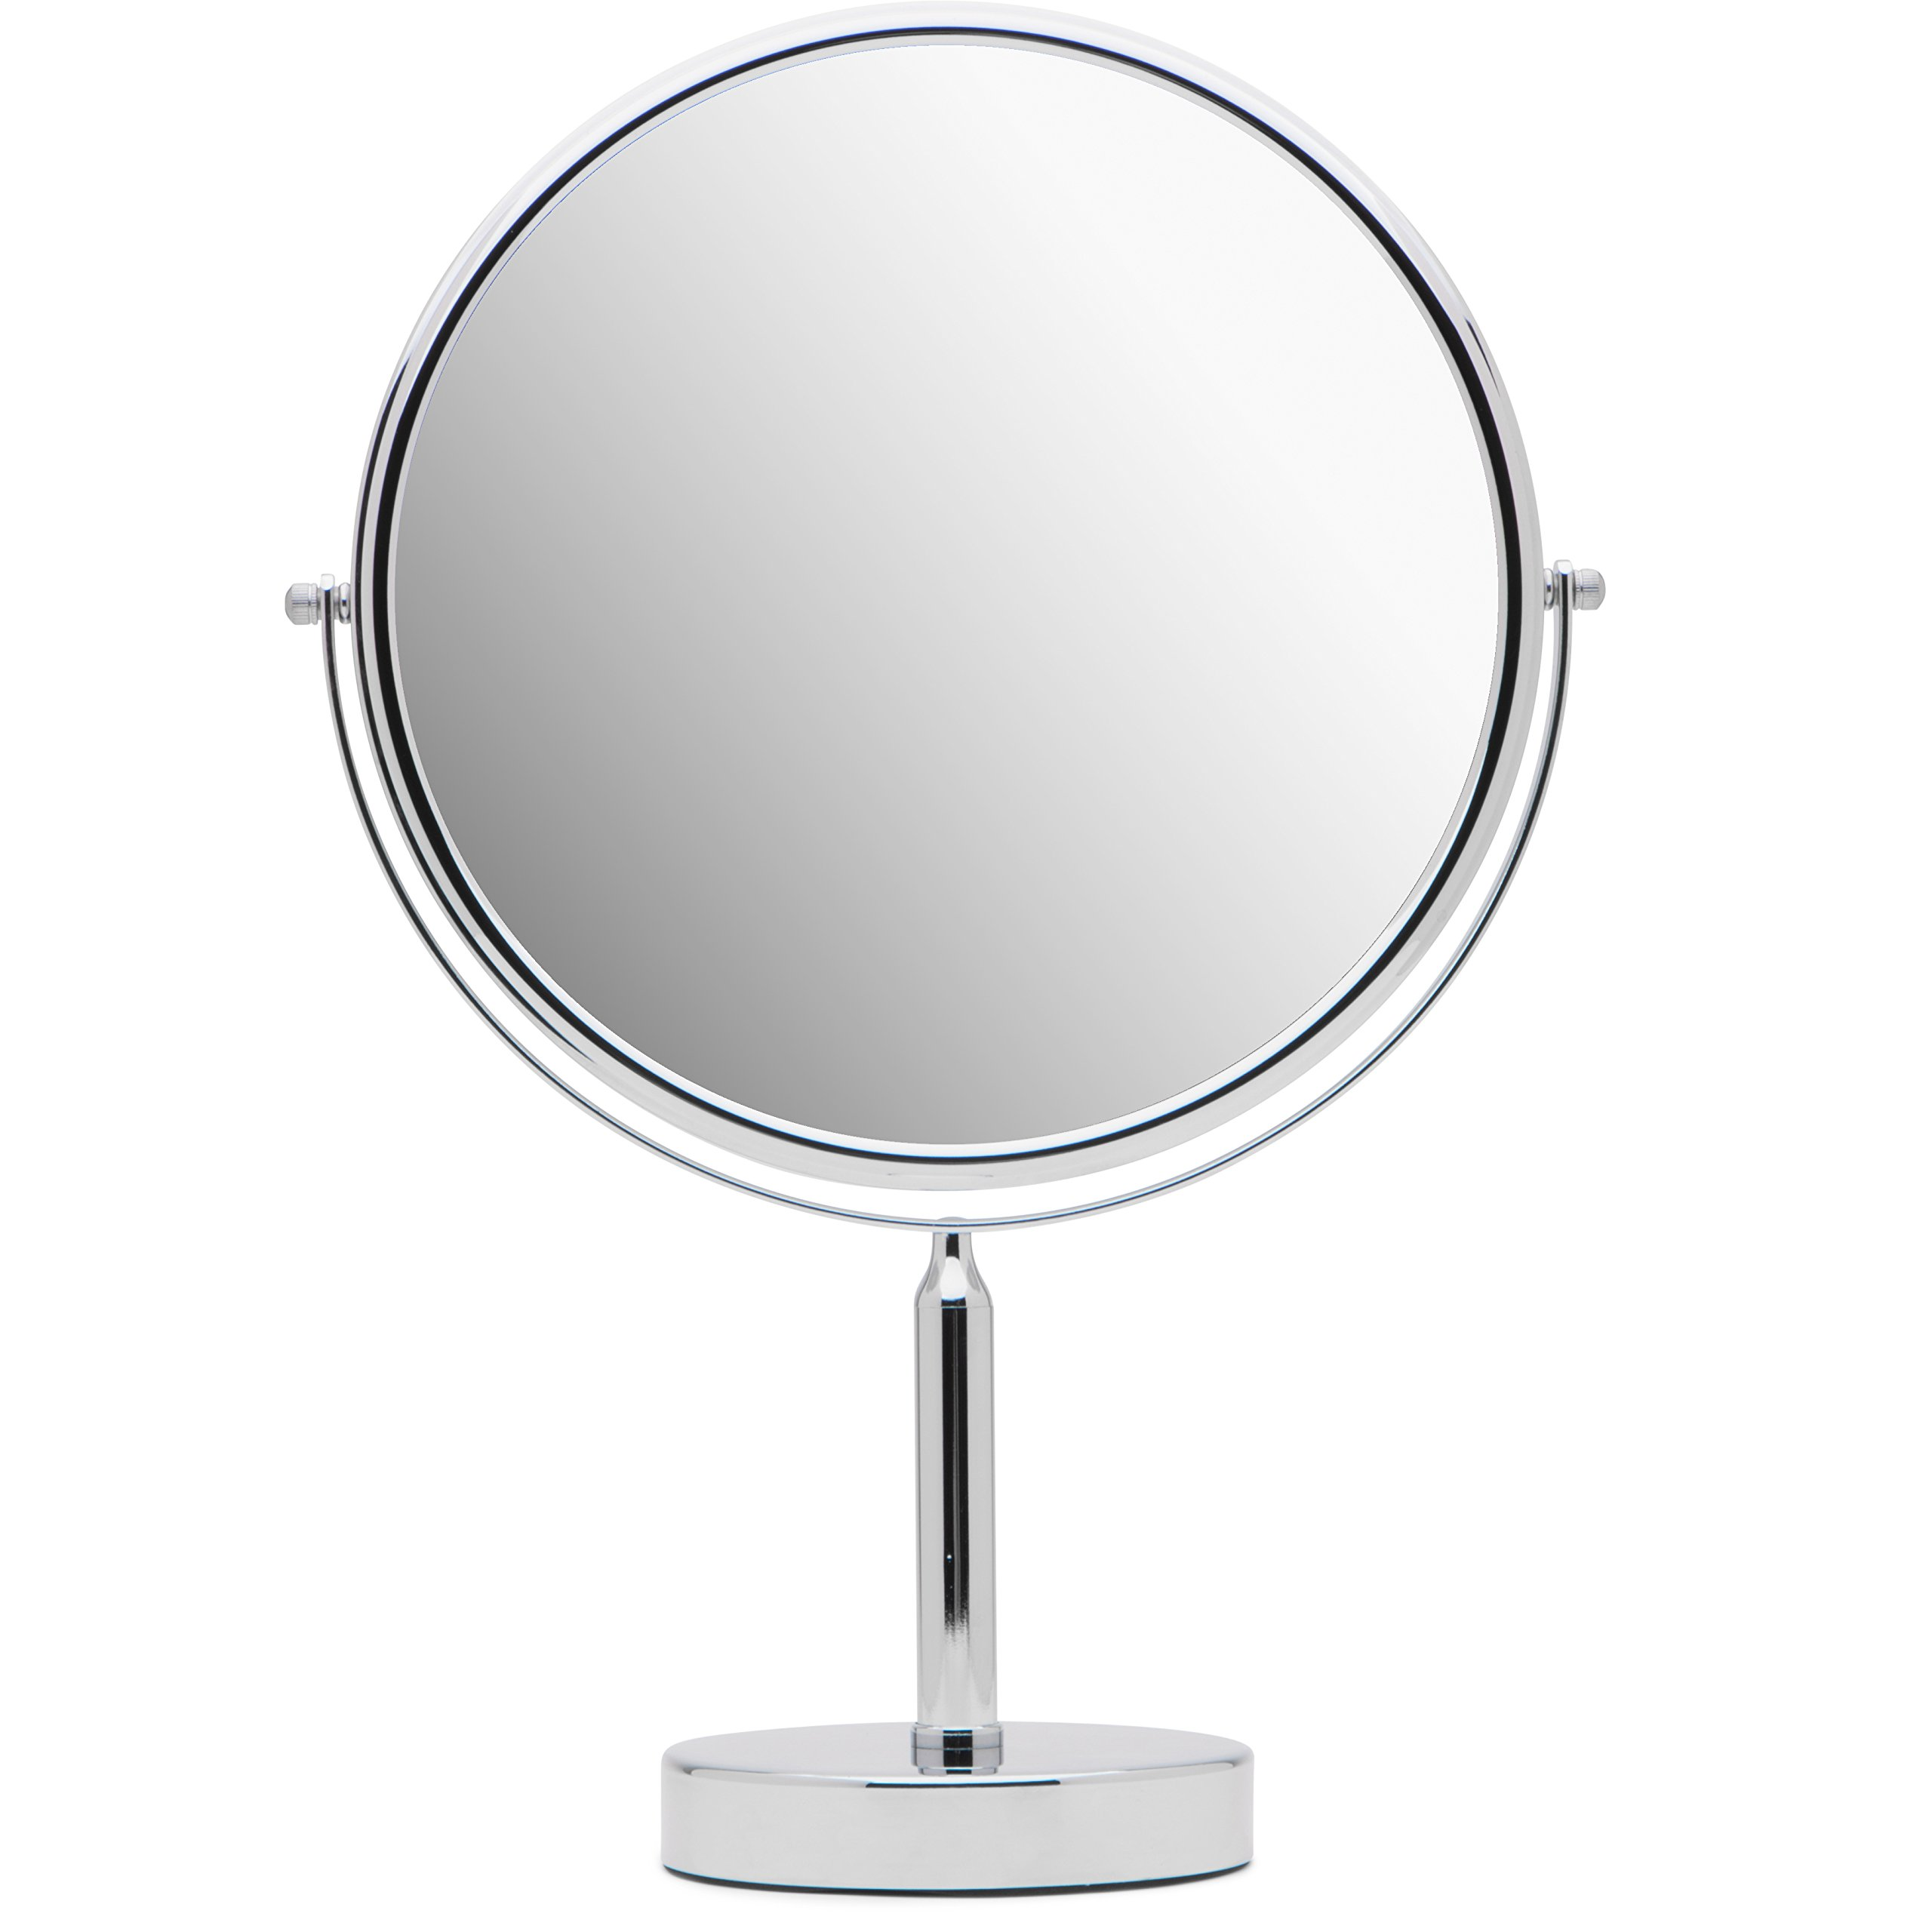 Mirrorvana XXLarge 11-Inch Oversized Magnifying Makeup Mirror with Stand, Double Sided 3x/1x Magnification, 17'' Height